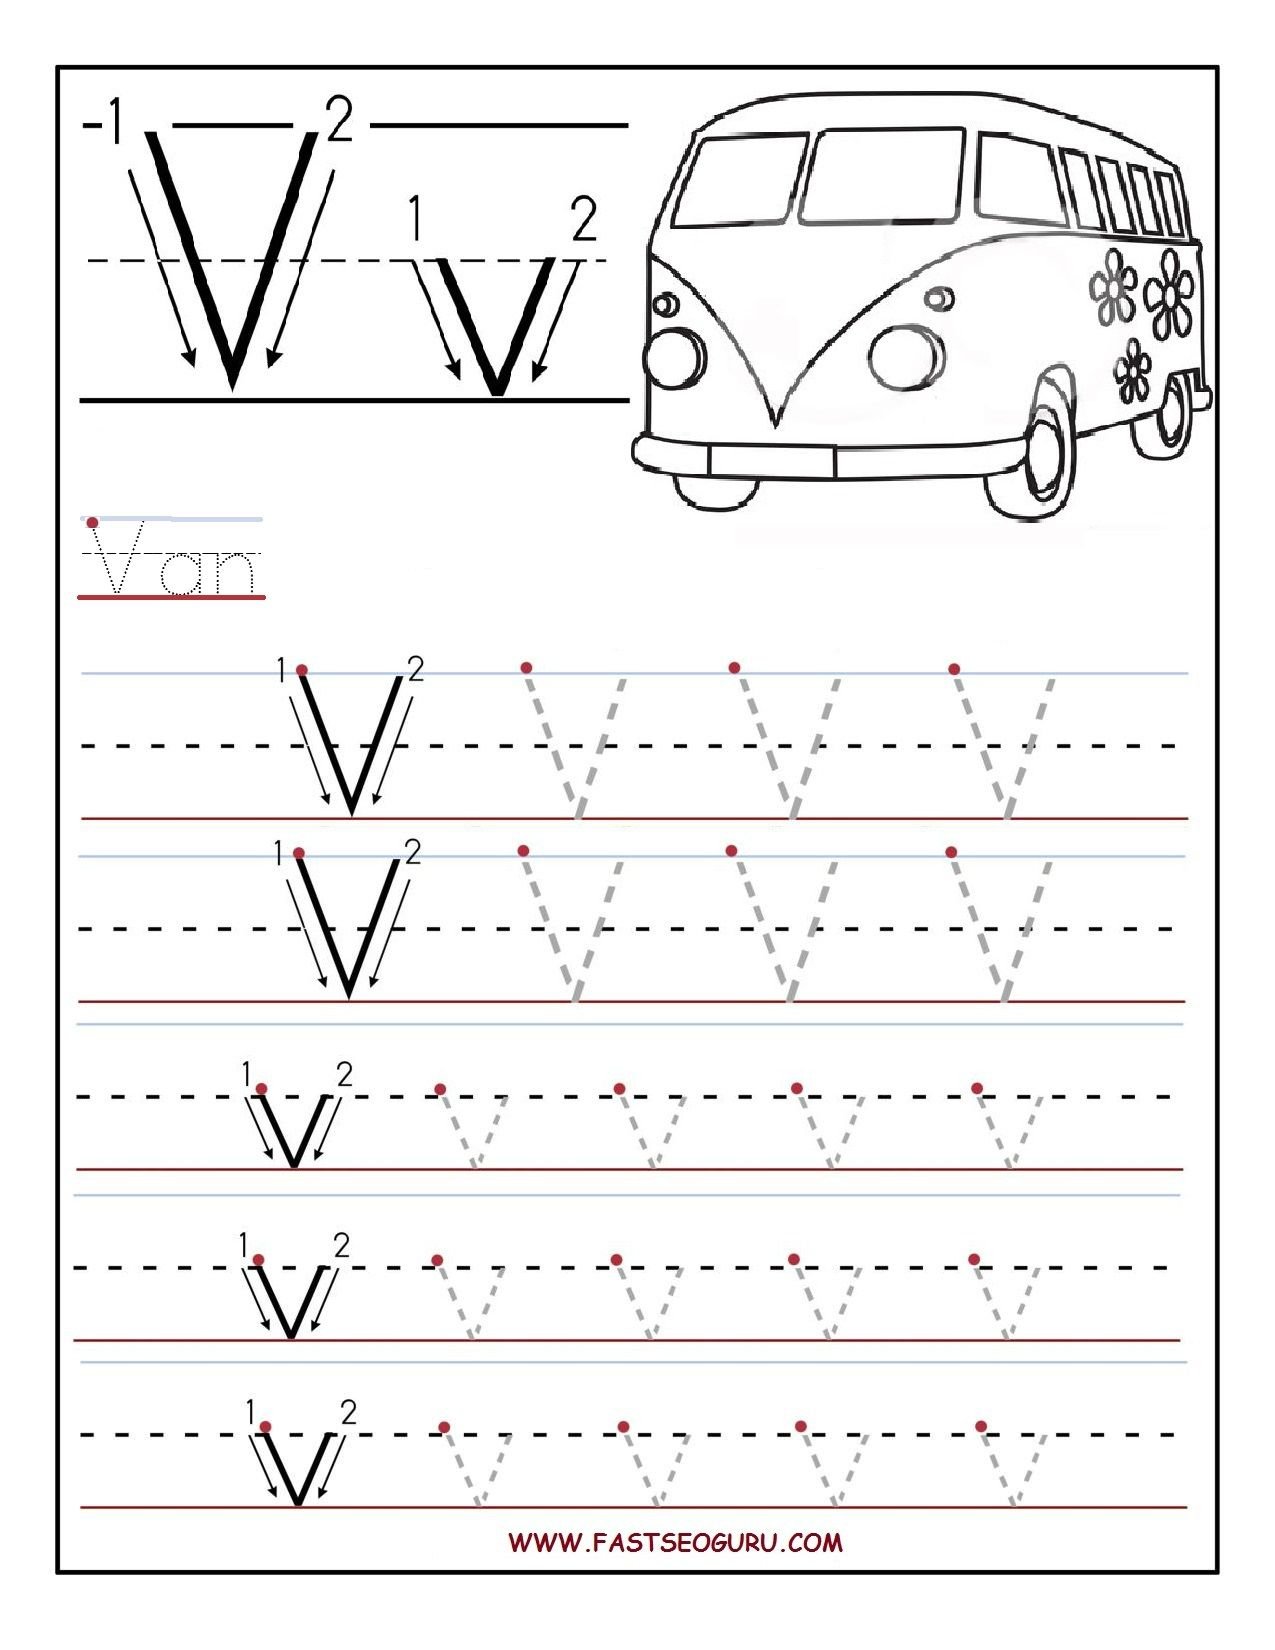 Printable Letter V Tracing Worksheets For Preschool with Preschool Alphabet V Worksheets